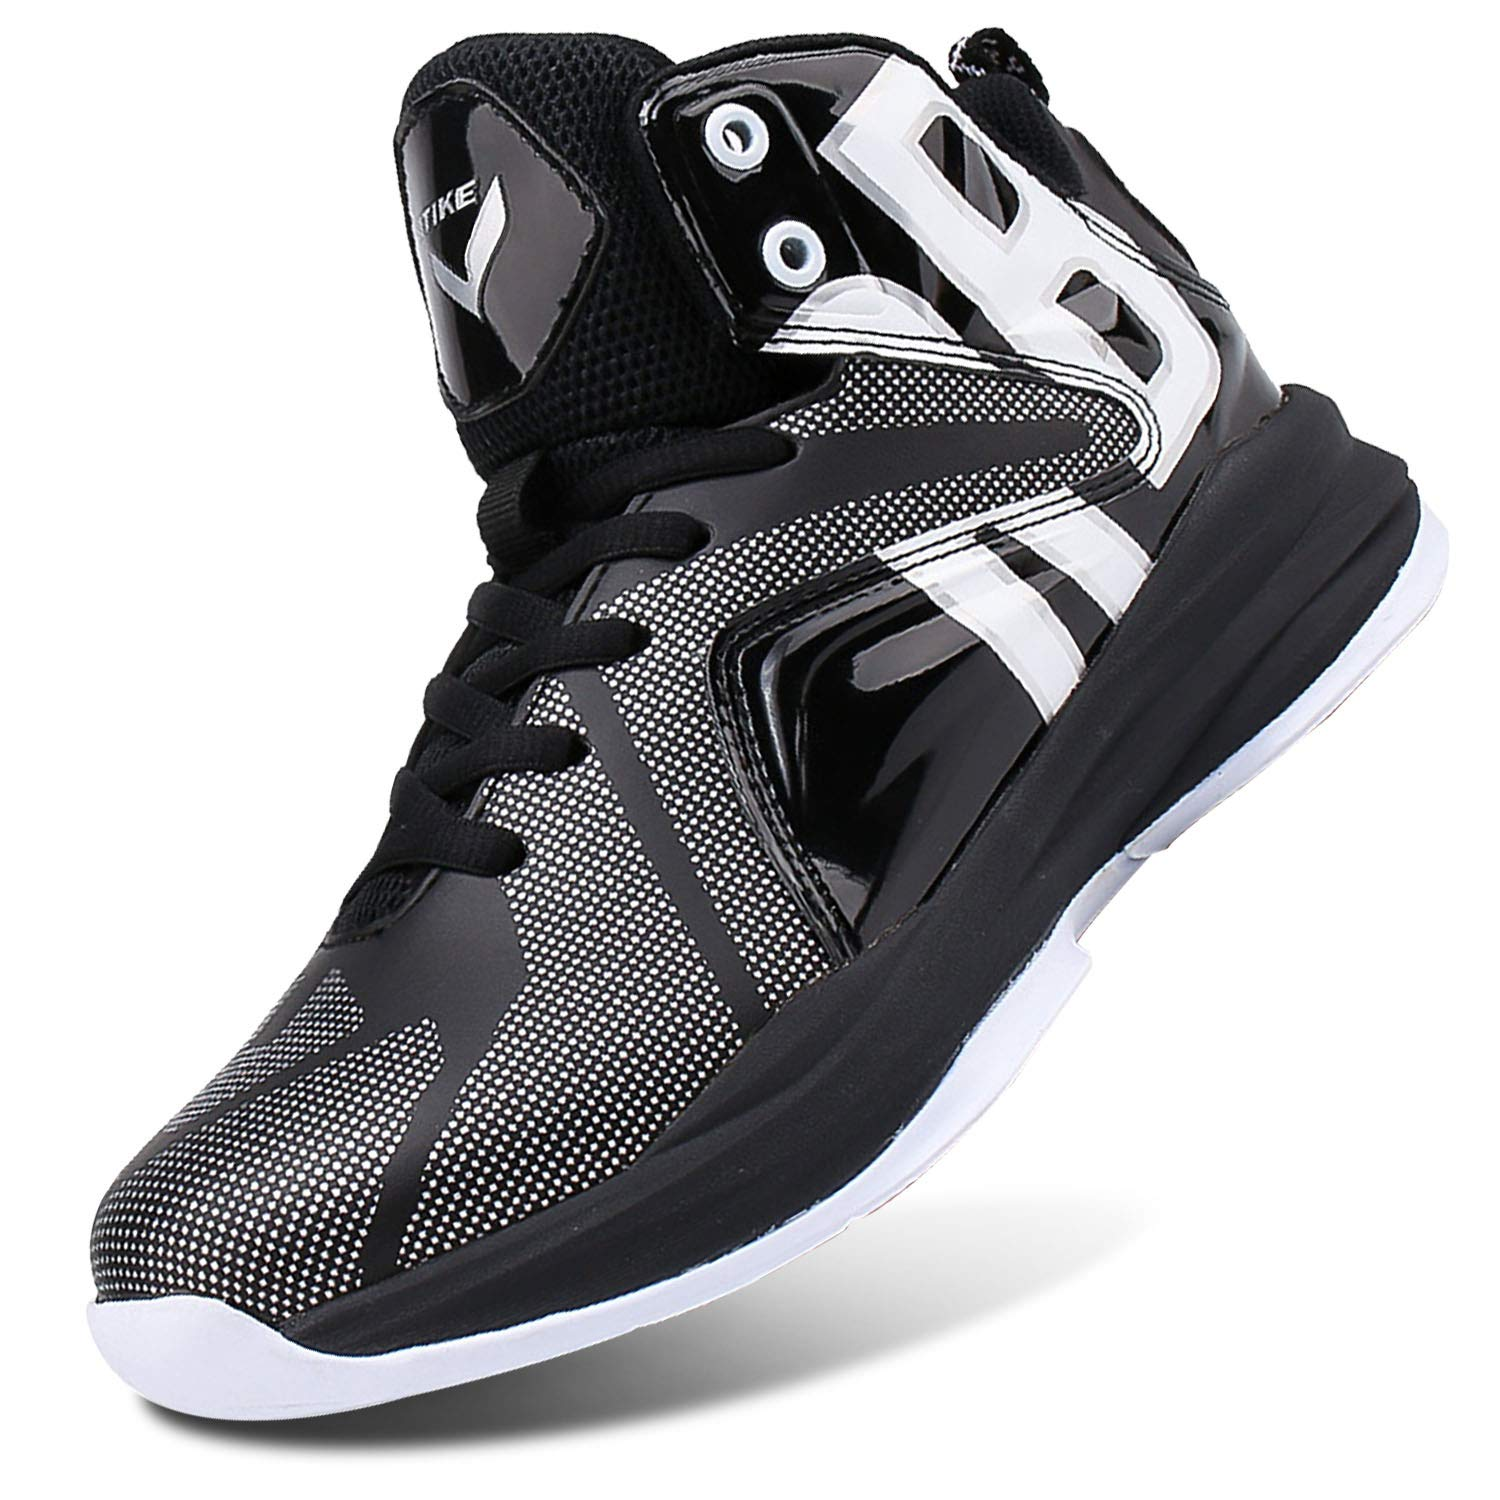 Little Kid//Big Kid WETIKE Kids Basketball Shoes High-Top Sneakers Outdoor Trainers Durable Sport Shoes 13M US Little Kid, Armor Black